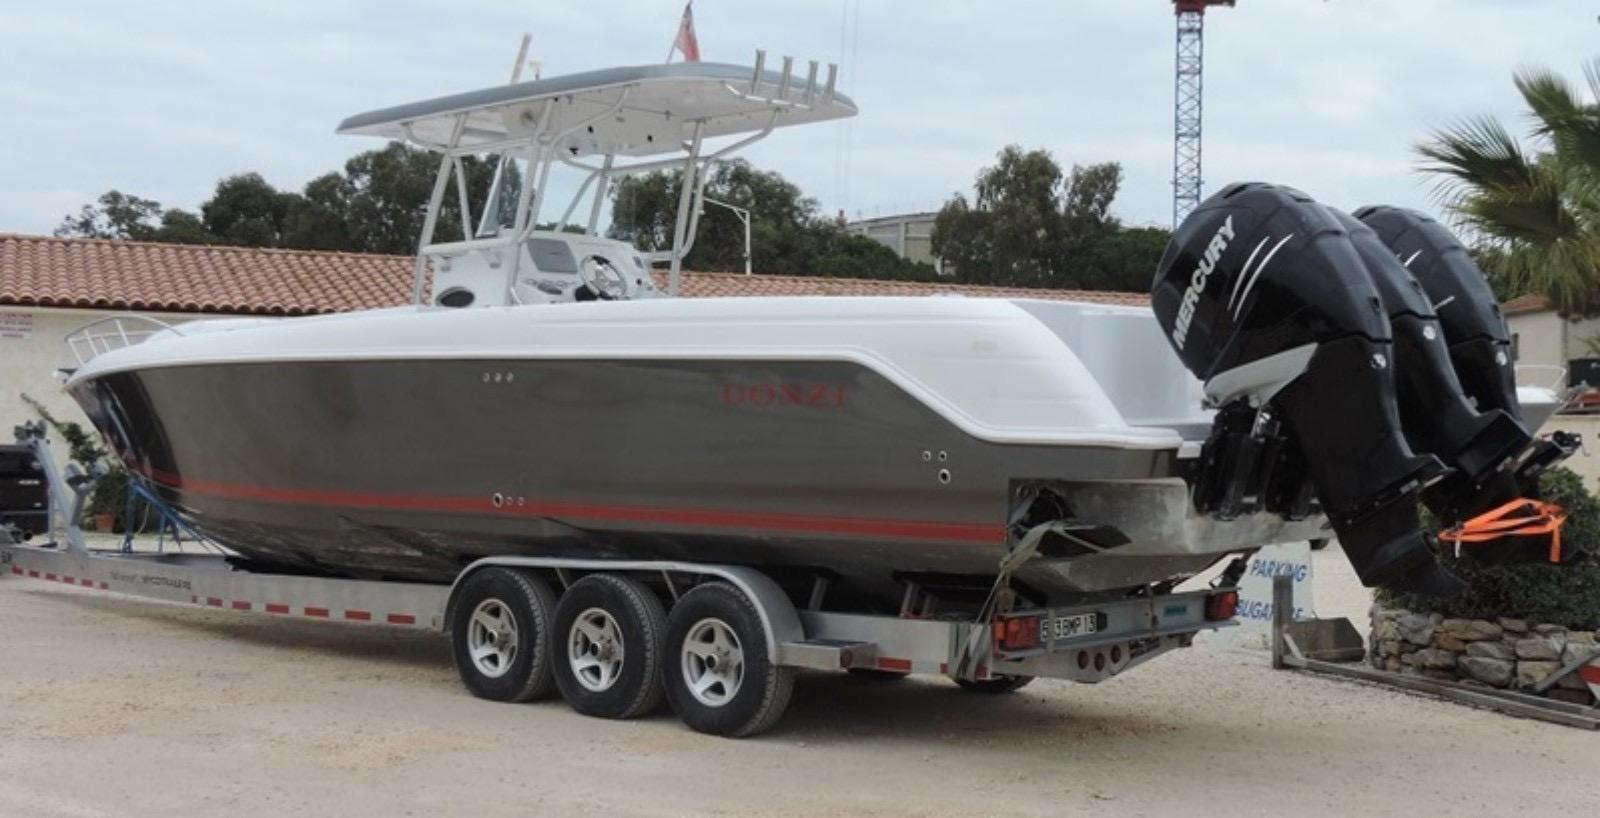 cuddy christian personals Favorite this post mar 13 great deal 2007 discovery 192 cuddy cabin $15900 (boat house of anaheim) christian bale and.